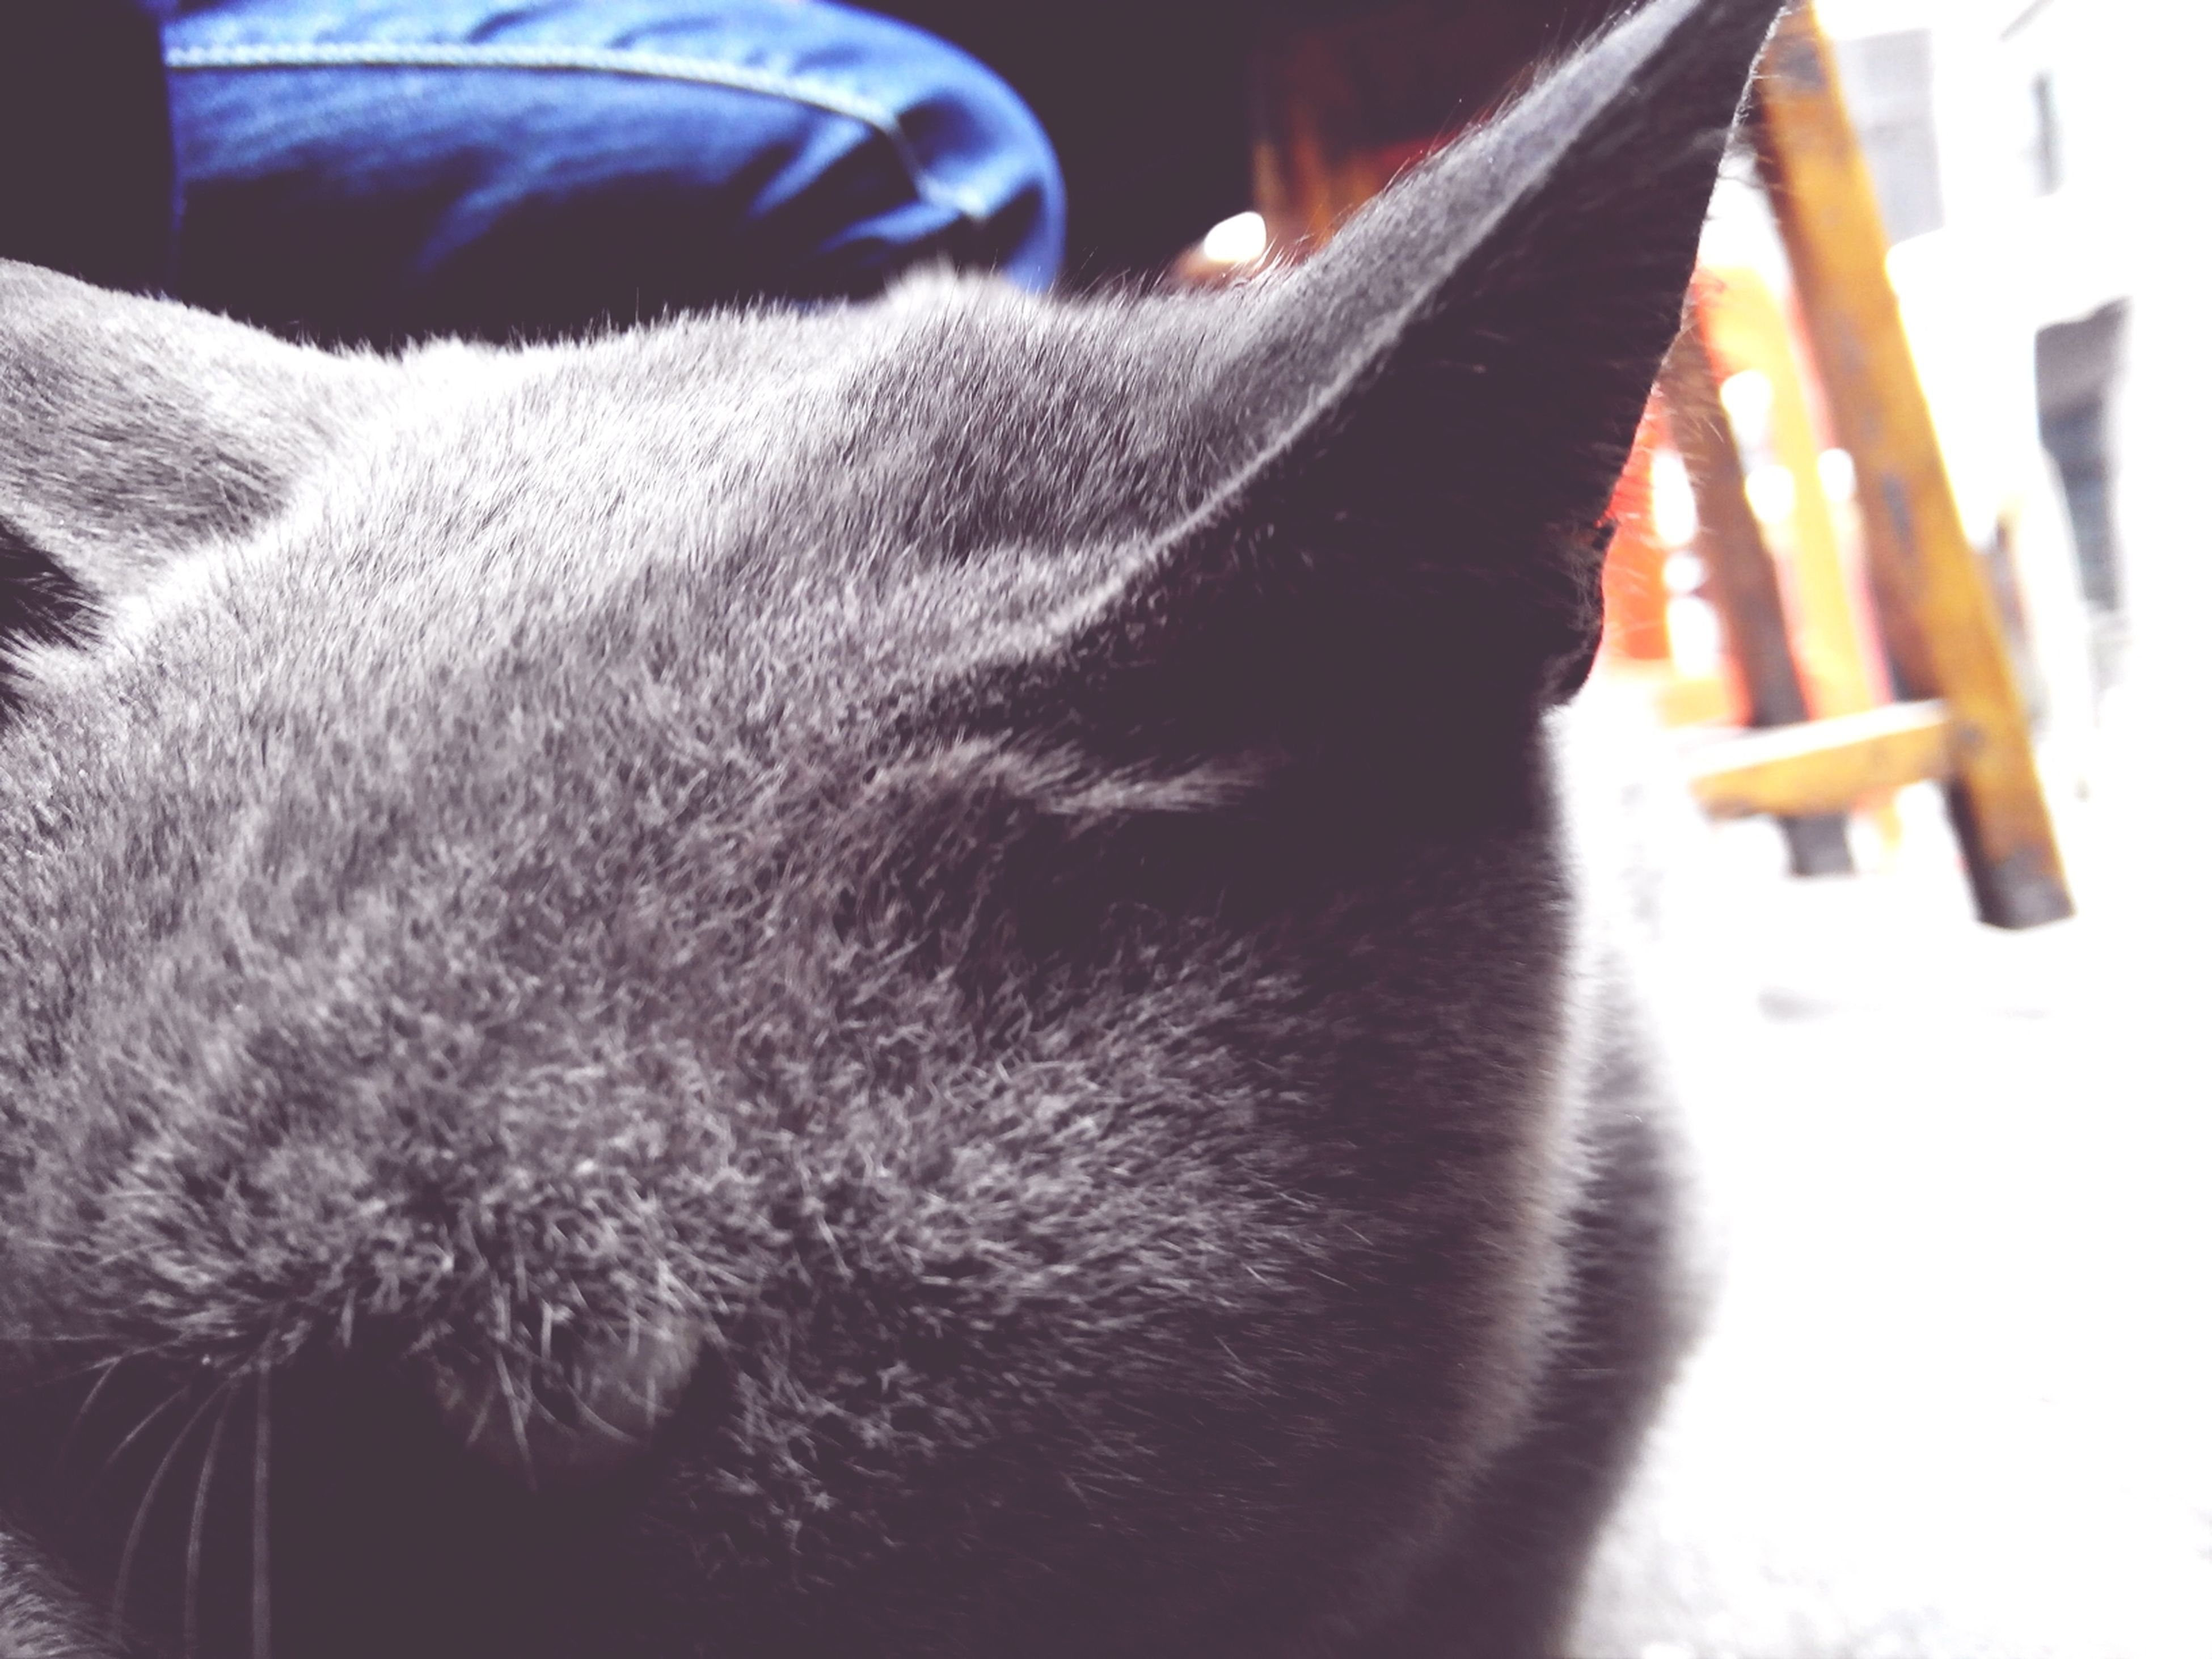 domestic animals, pets, one animal, mammal, animal themes, domestic cat, cat, feline, indoors, close-up, animal head, whisker, animal body part, sleeping, part of, relaxation, home interior, no people, cropped, eyes closed